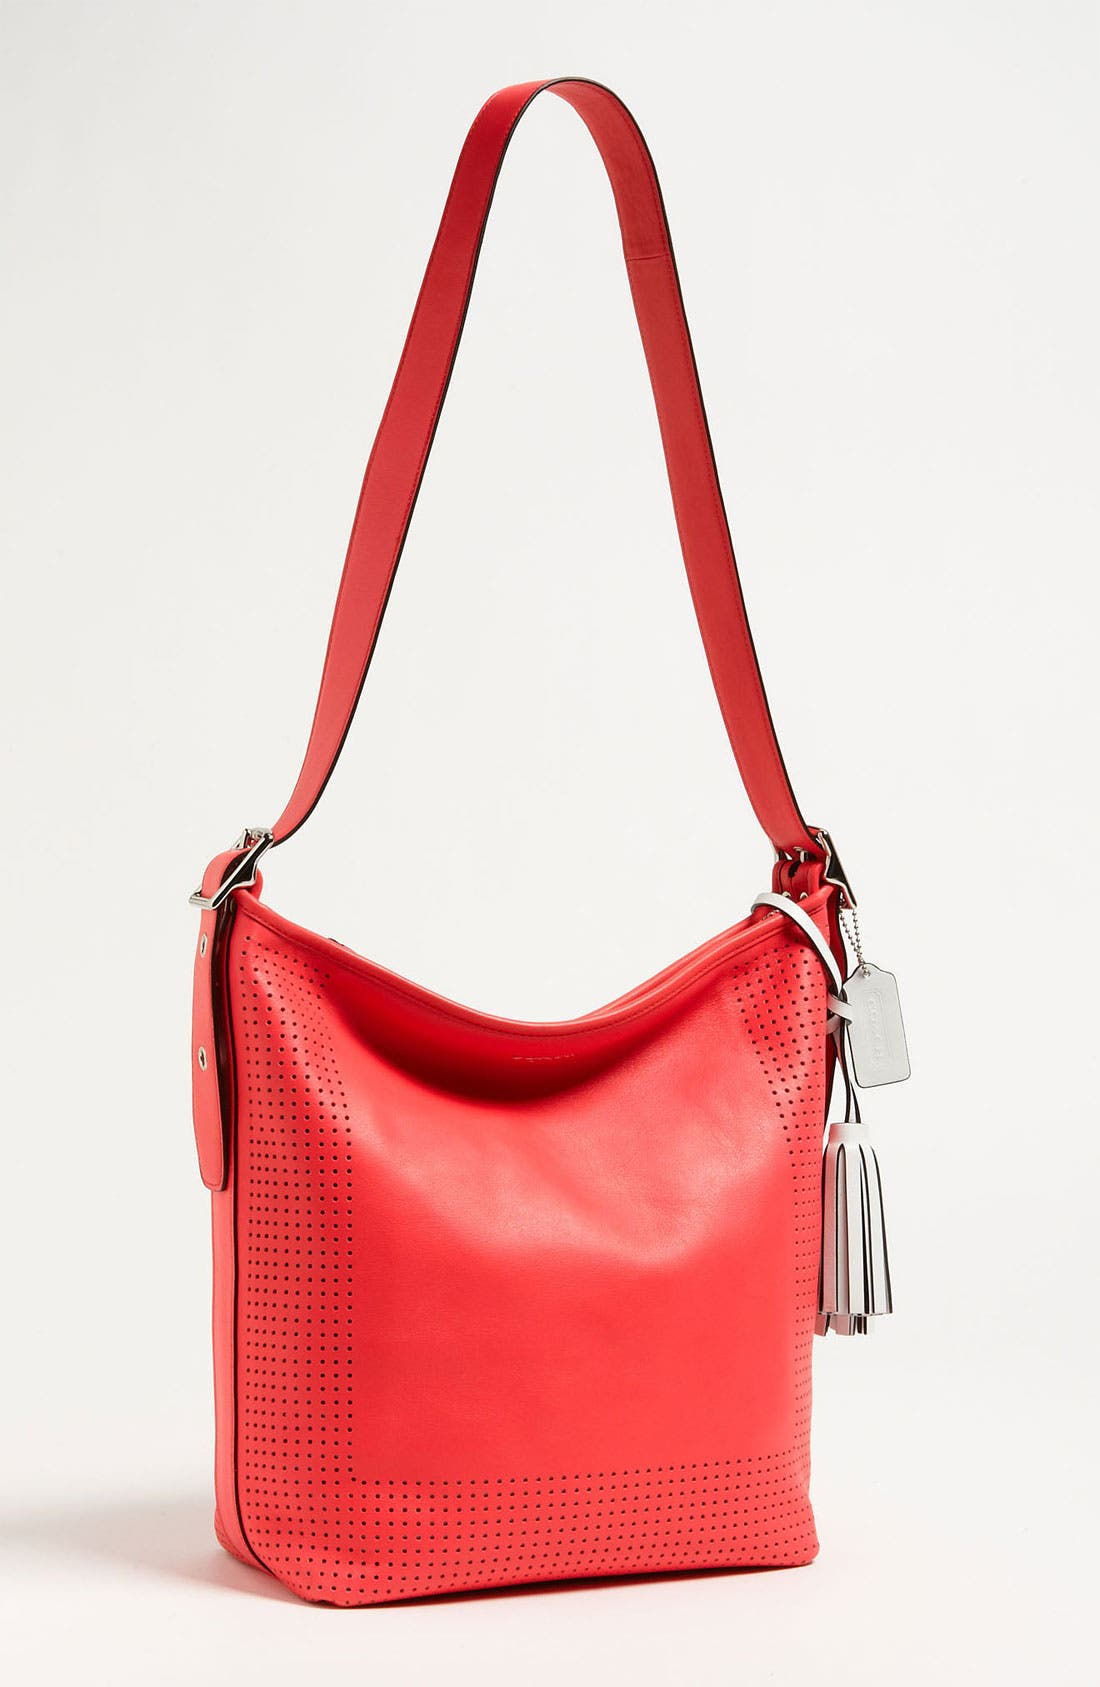 Alternate Image 1 Selected - COACH 'Legacy' Perforated Leather Shoulder Bag